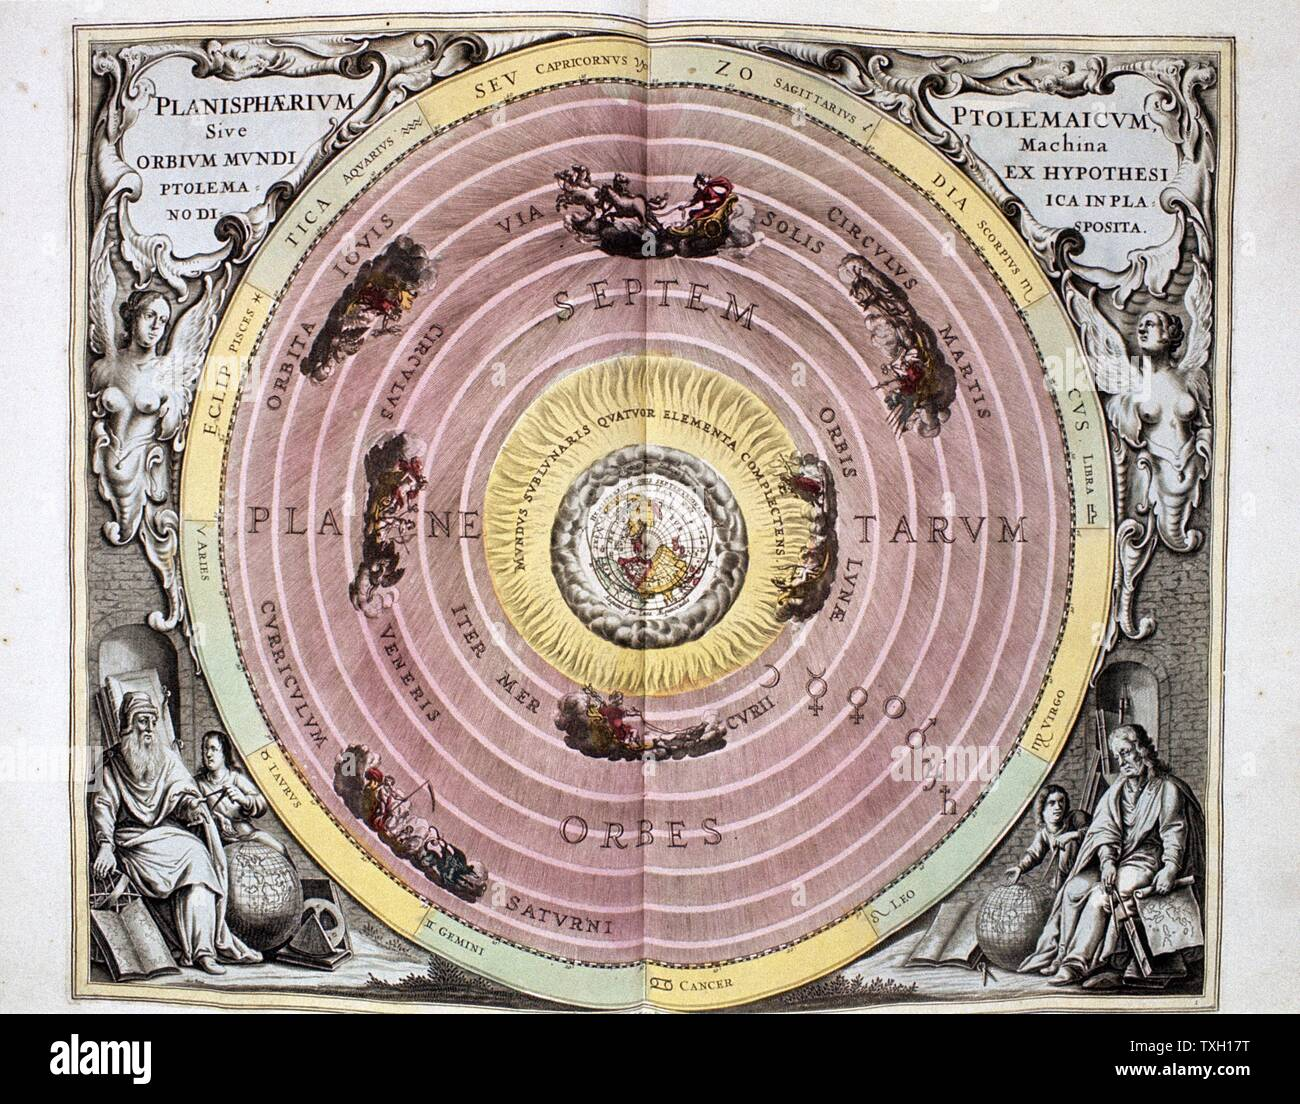 """Ptolemaic (Geocentric/Earth-centred)) system of universe, showing Earth surrounded by water air and fire (4 Greek elements) and the spheres of the planets and stars. From Andreas Cellarius """"Harmonia Macrocosmica"""" Amsterdam, 1708 Stock Photo"""